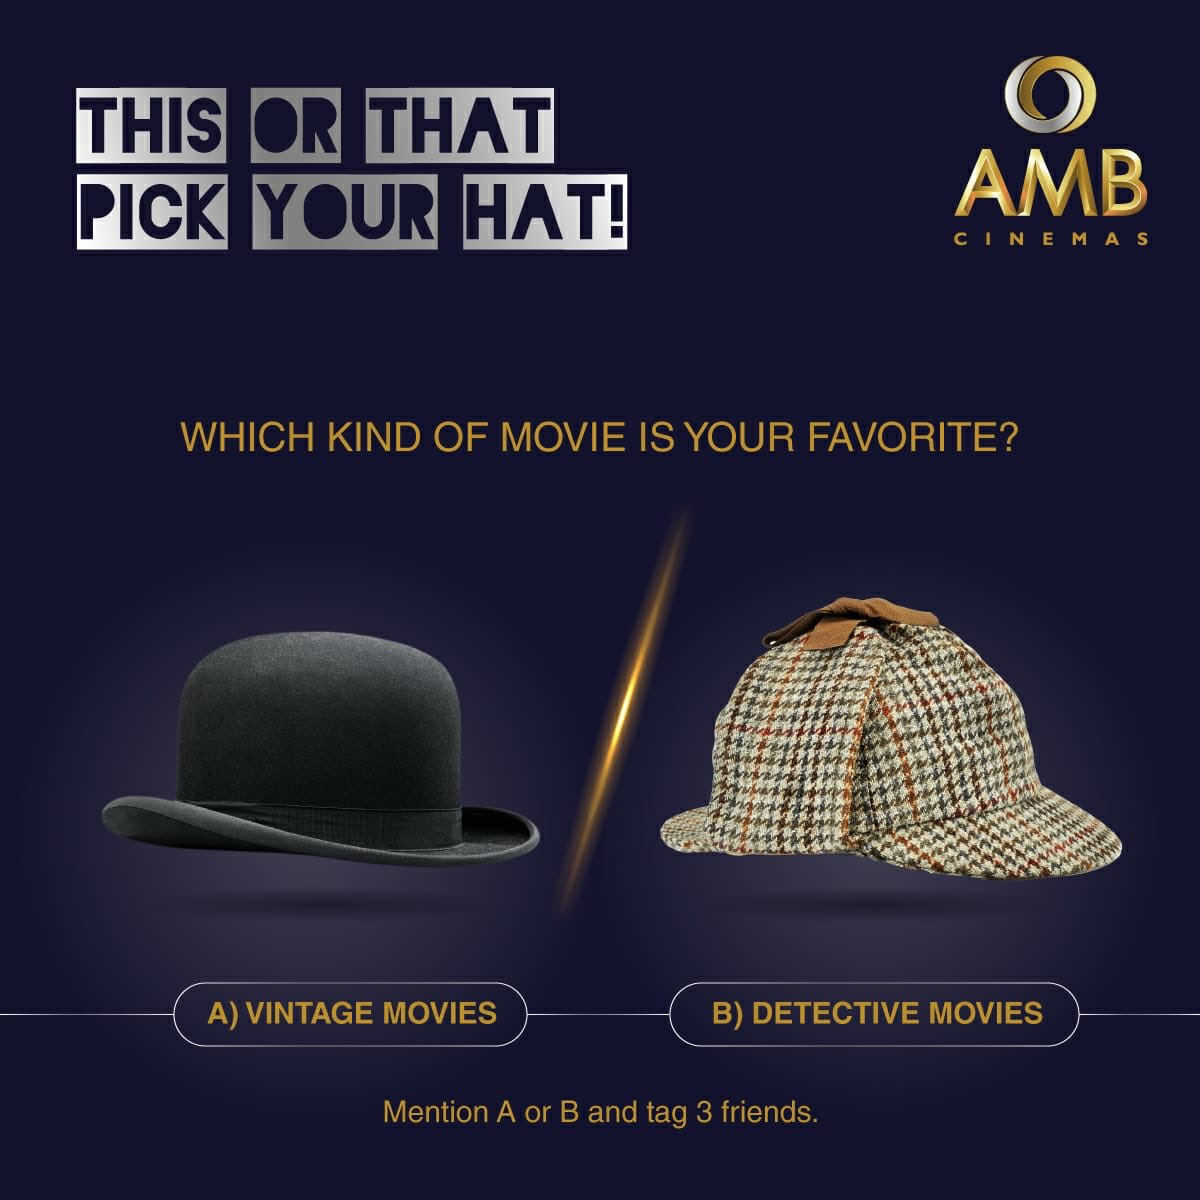 Which kind of movie is your favorite?🤔 Comment A for Vintage movies 🤶🏻 or B for Detective movies 🕵🏻♂️ and tag 3 friends to pick their hat! #ThisOrThat #PickYourHat #Vintage #Detective #Movies #AMBCinemas